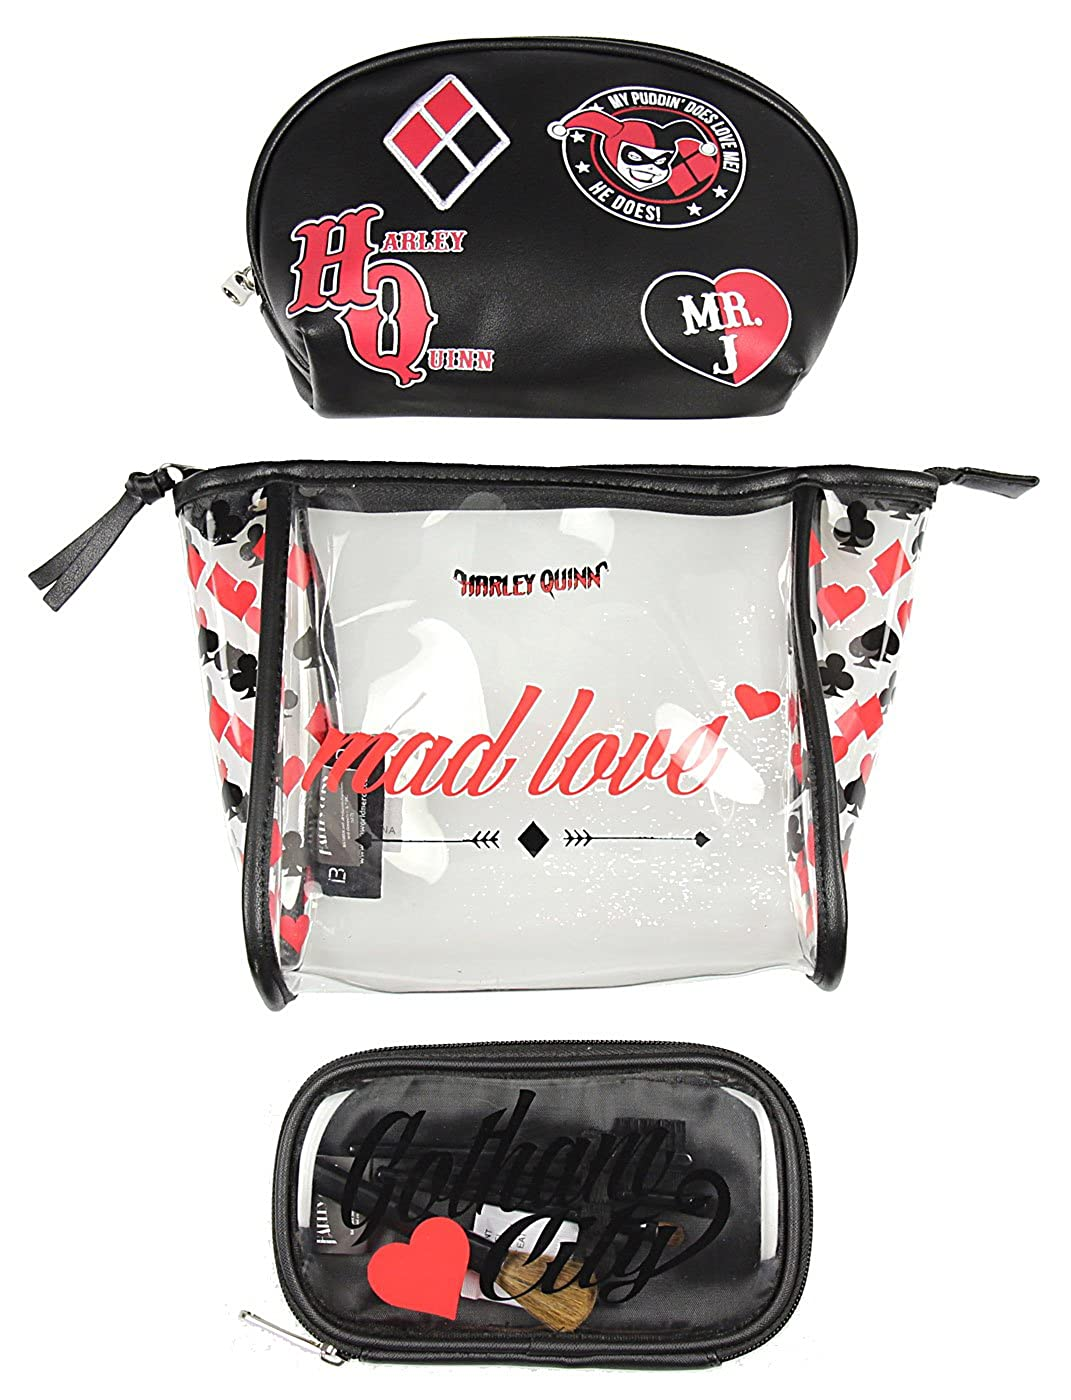 Harley Quinn Mad Love Jrs. Cosmetic 3 Piece Bag Set